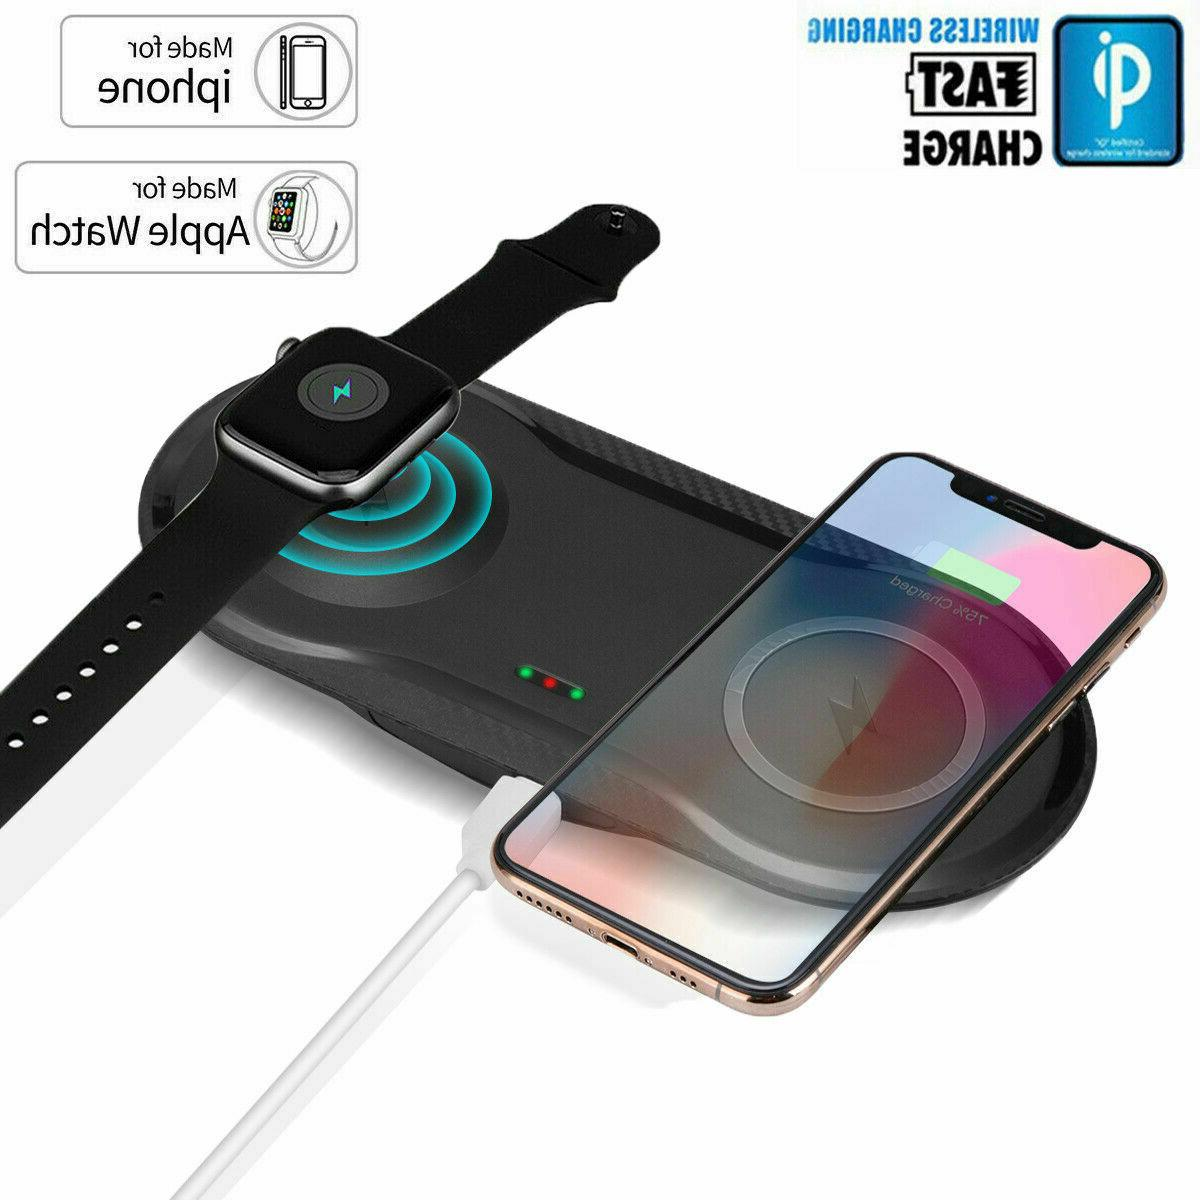 2 in 1 fast qi wireless charger